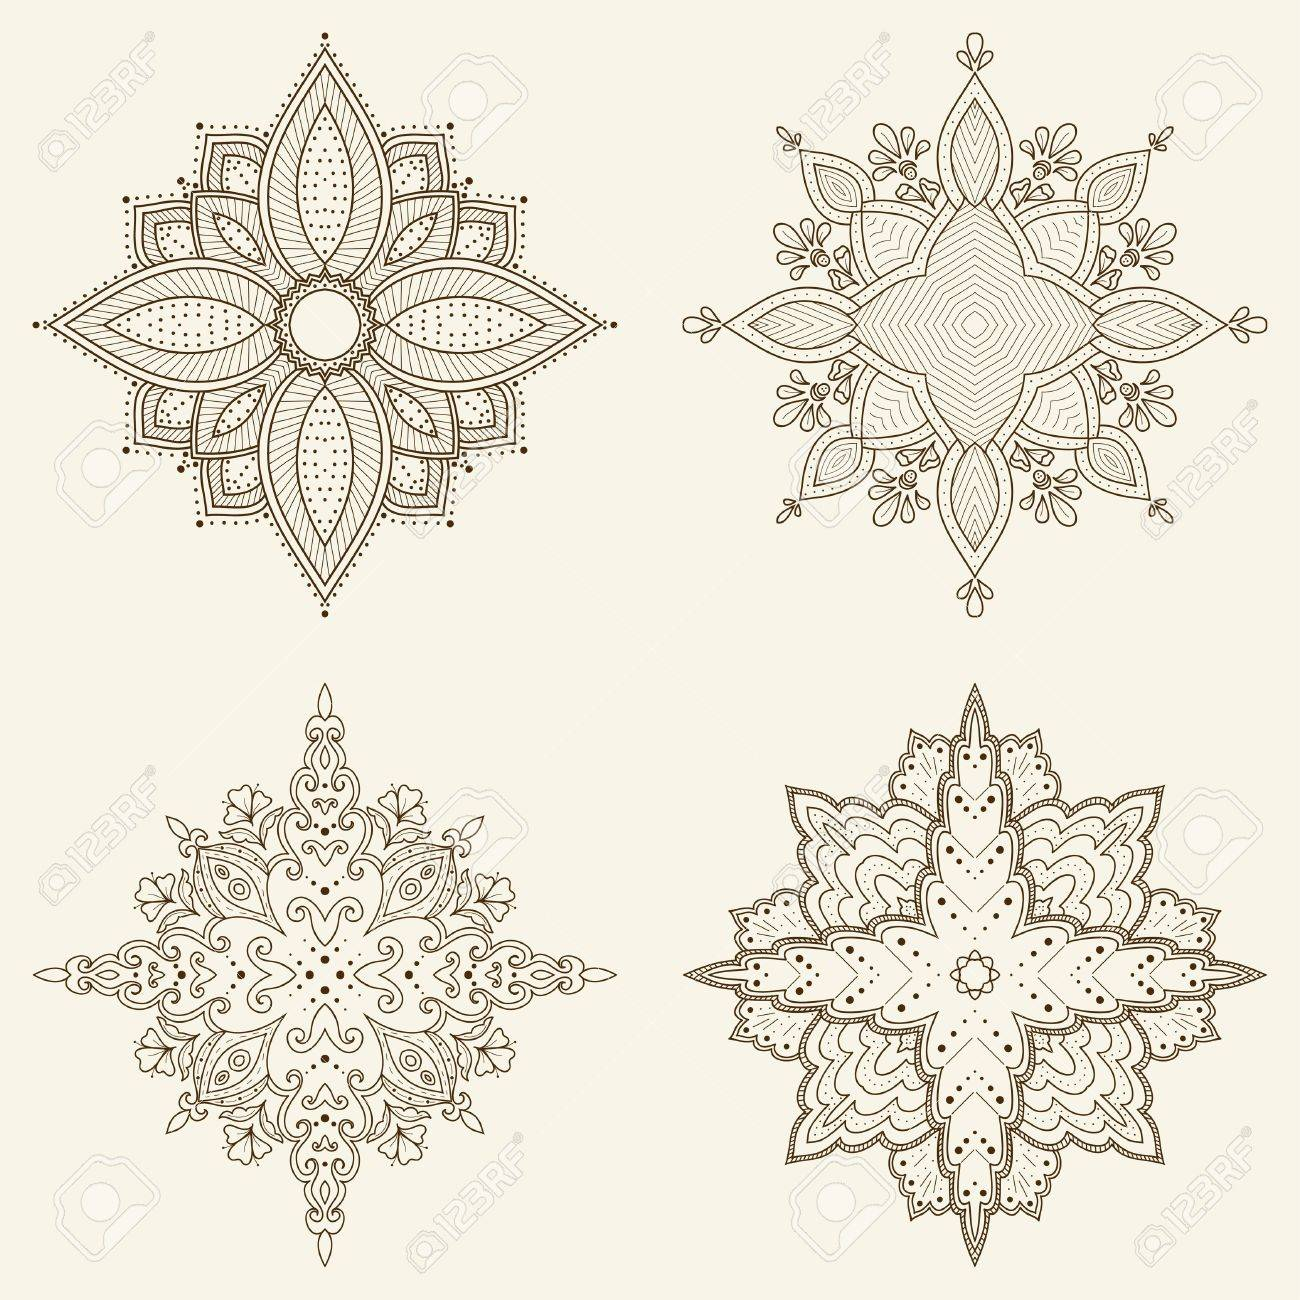 Set of four mandalas  Beautiful hand drawn flowers  Ethnic lace round ornamental pattern  Can be used to fabric design, decorative paper, web design, embroidery, tattoo, etc Stock Vector - 20025662